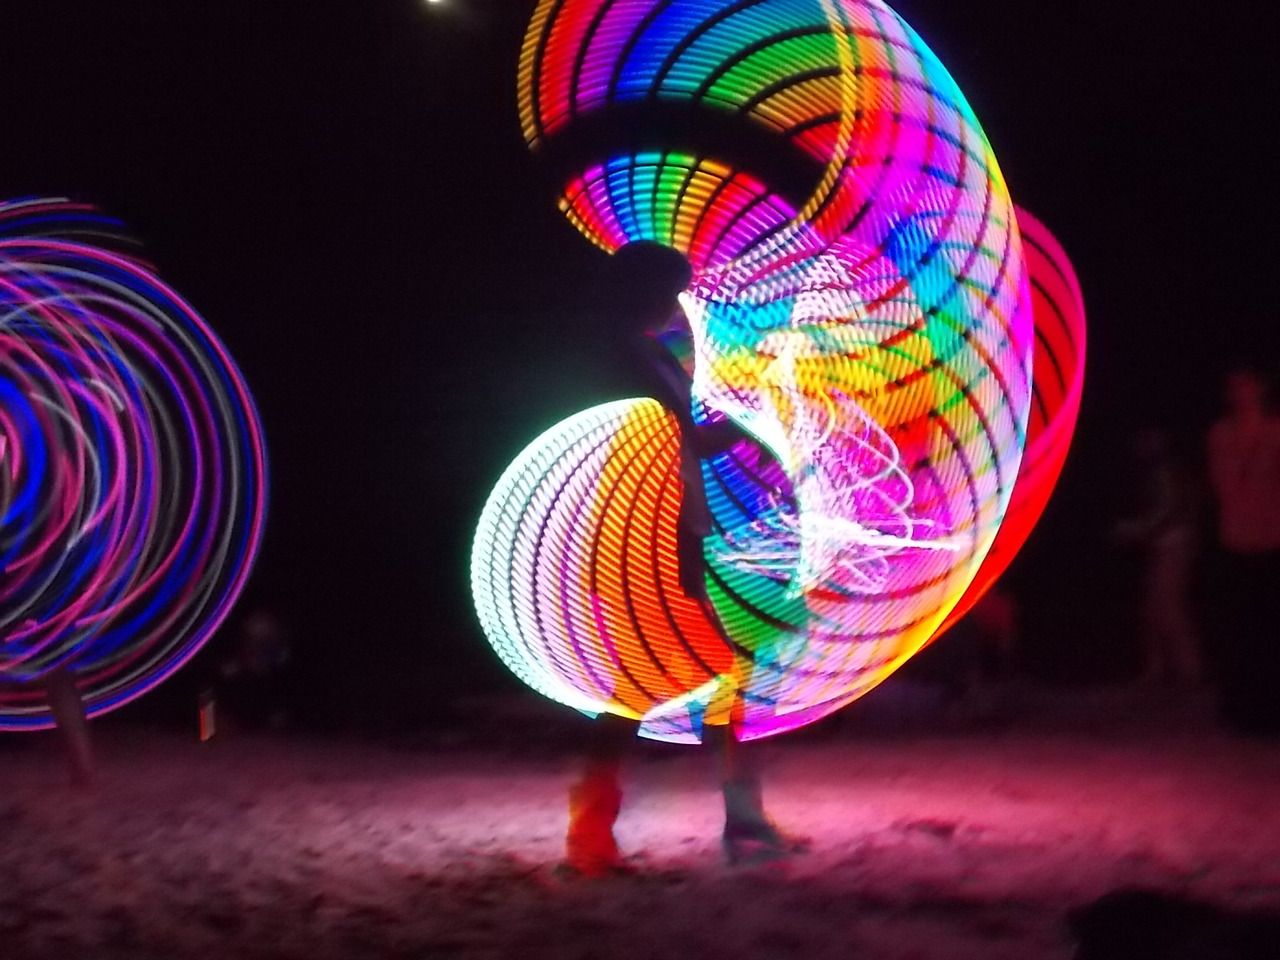 This Ledhoop Is Rediculously Lovely Hoopnotica Hula Hoop Led On Pinterest And Hoops